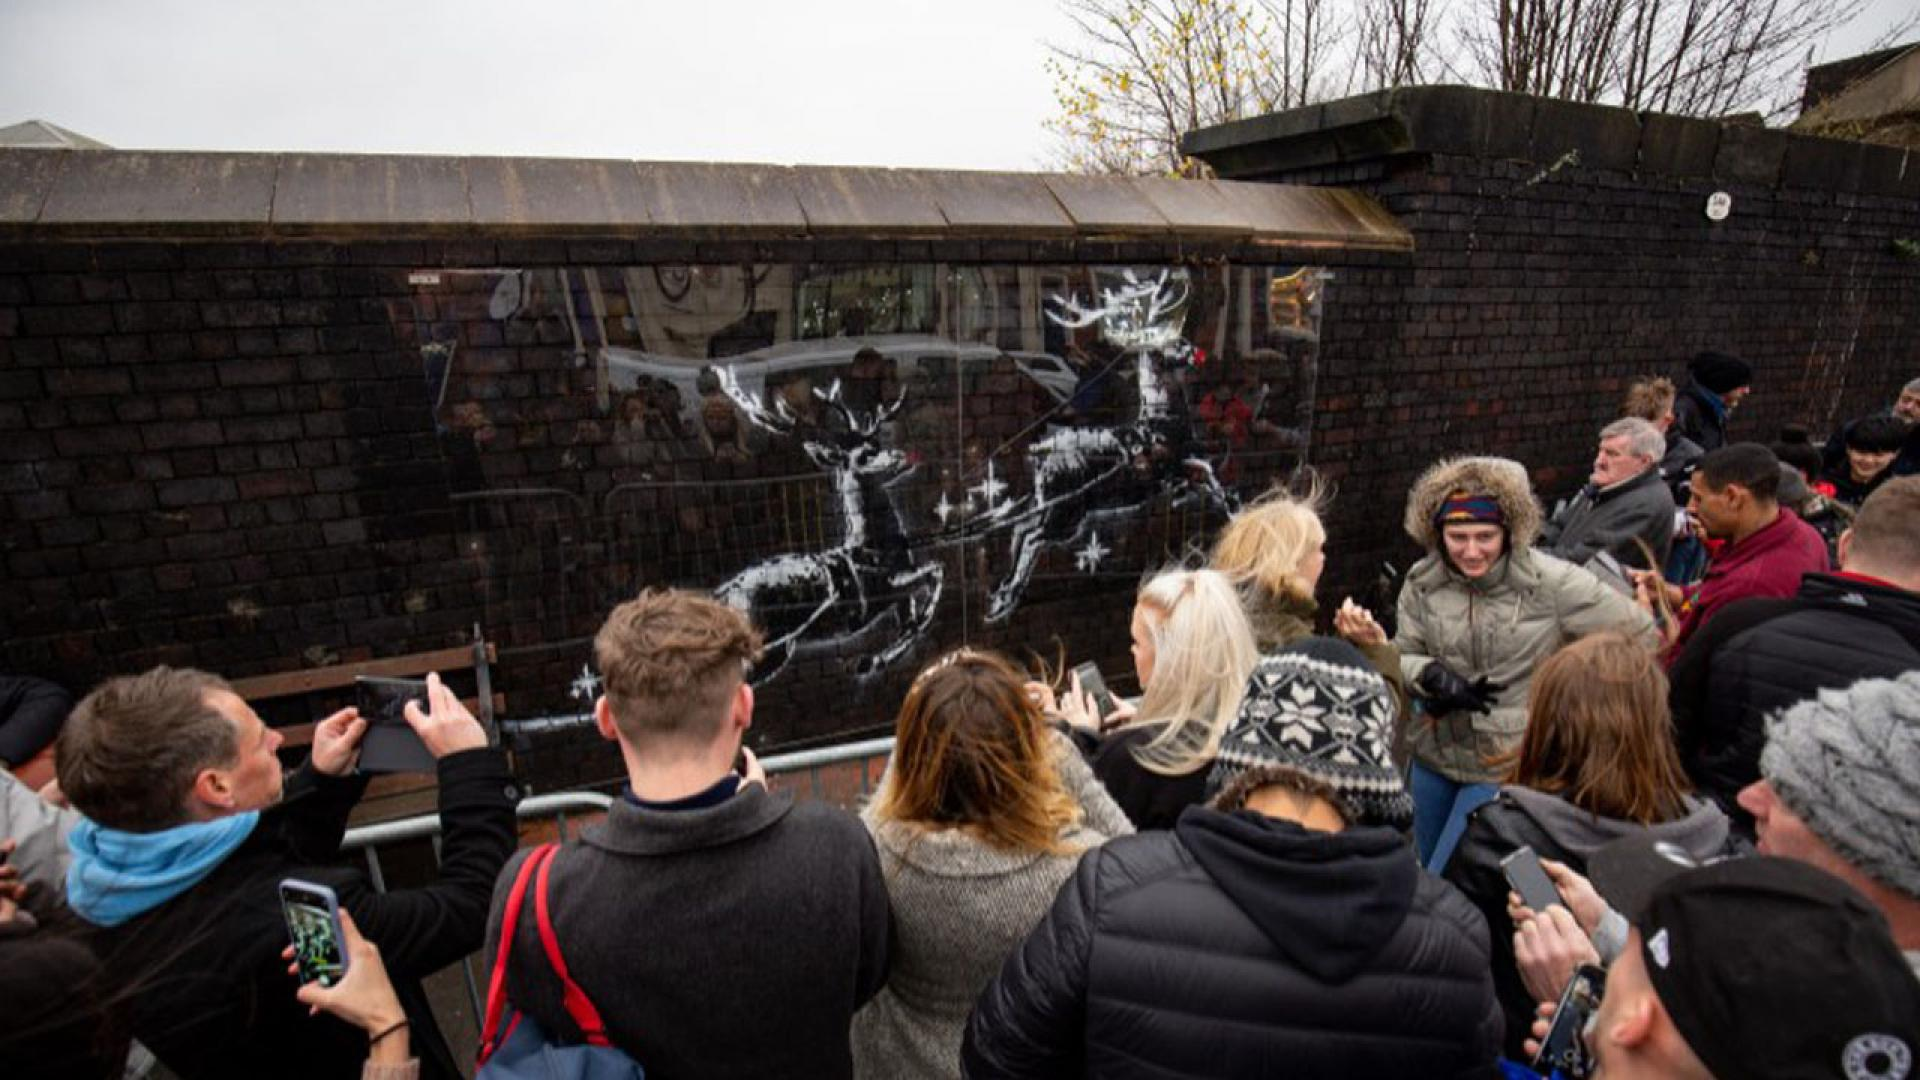 New Banksy mural defaced twice within hours of being discovered.